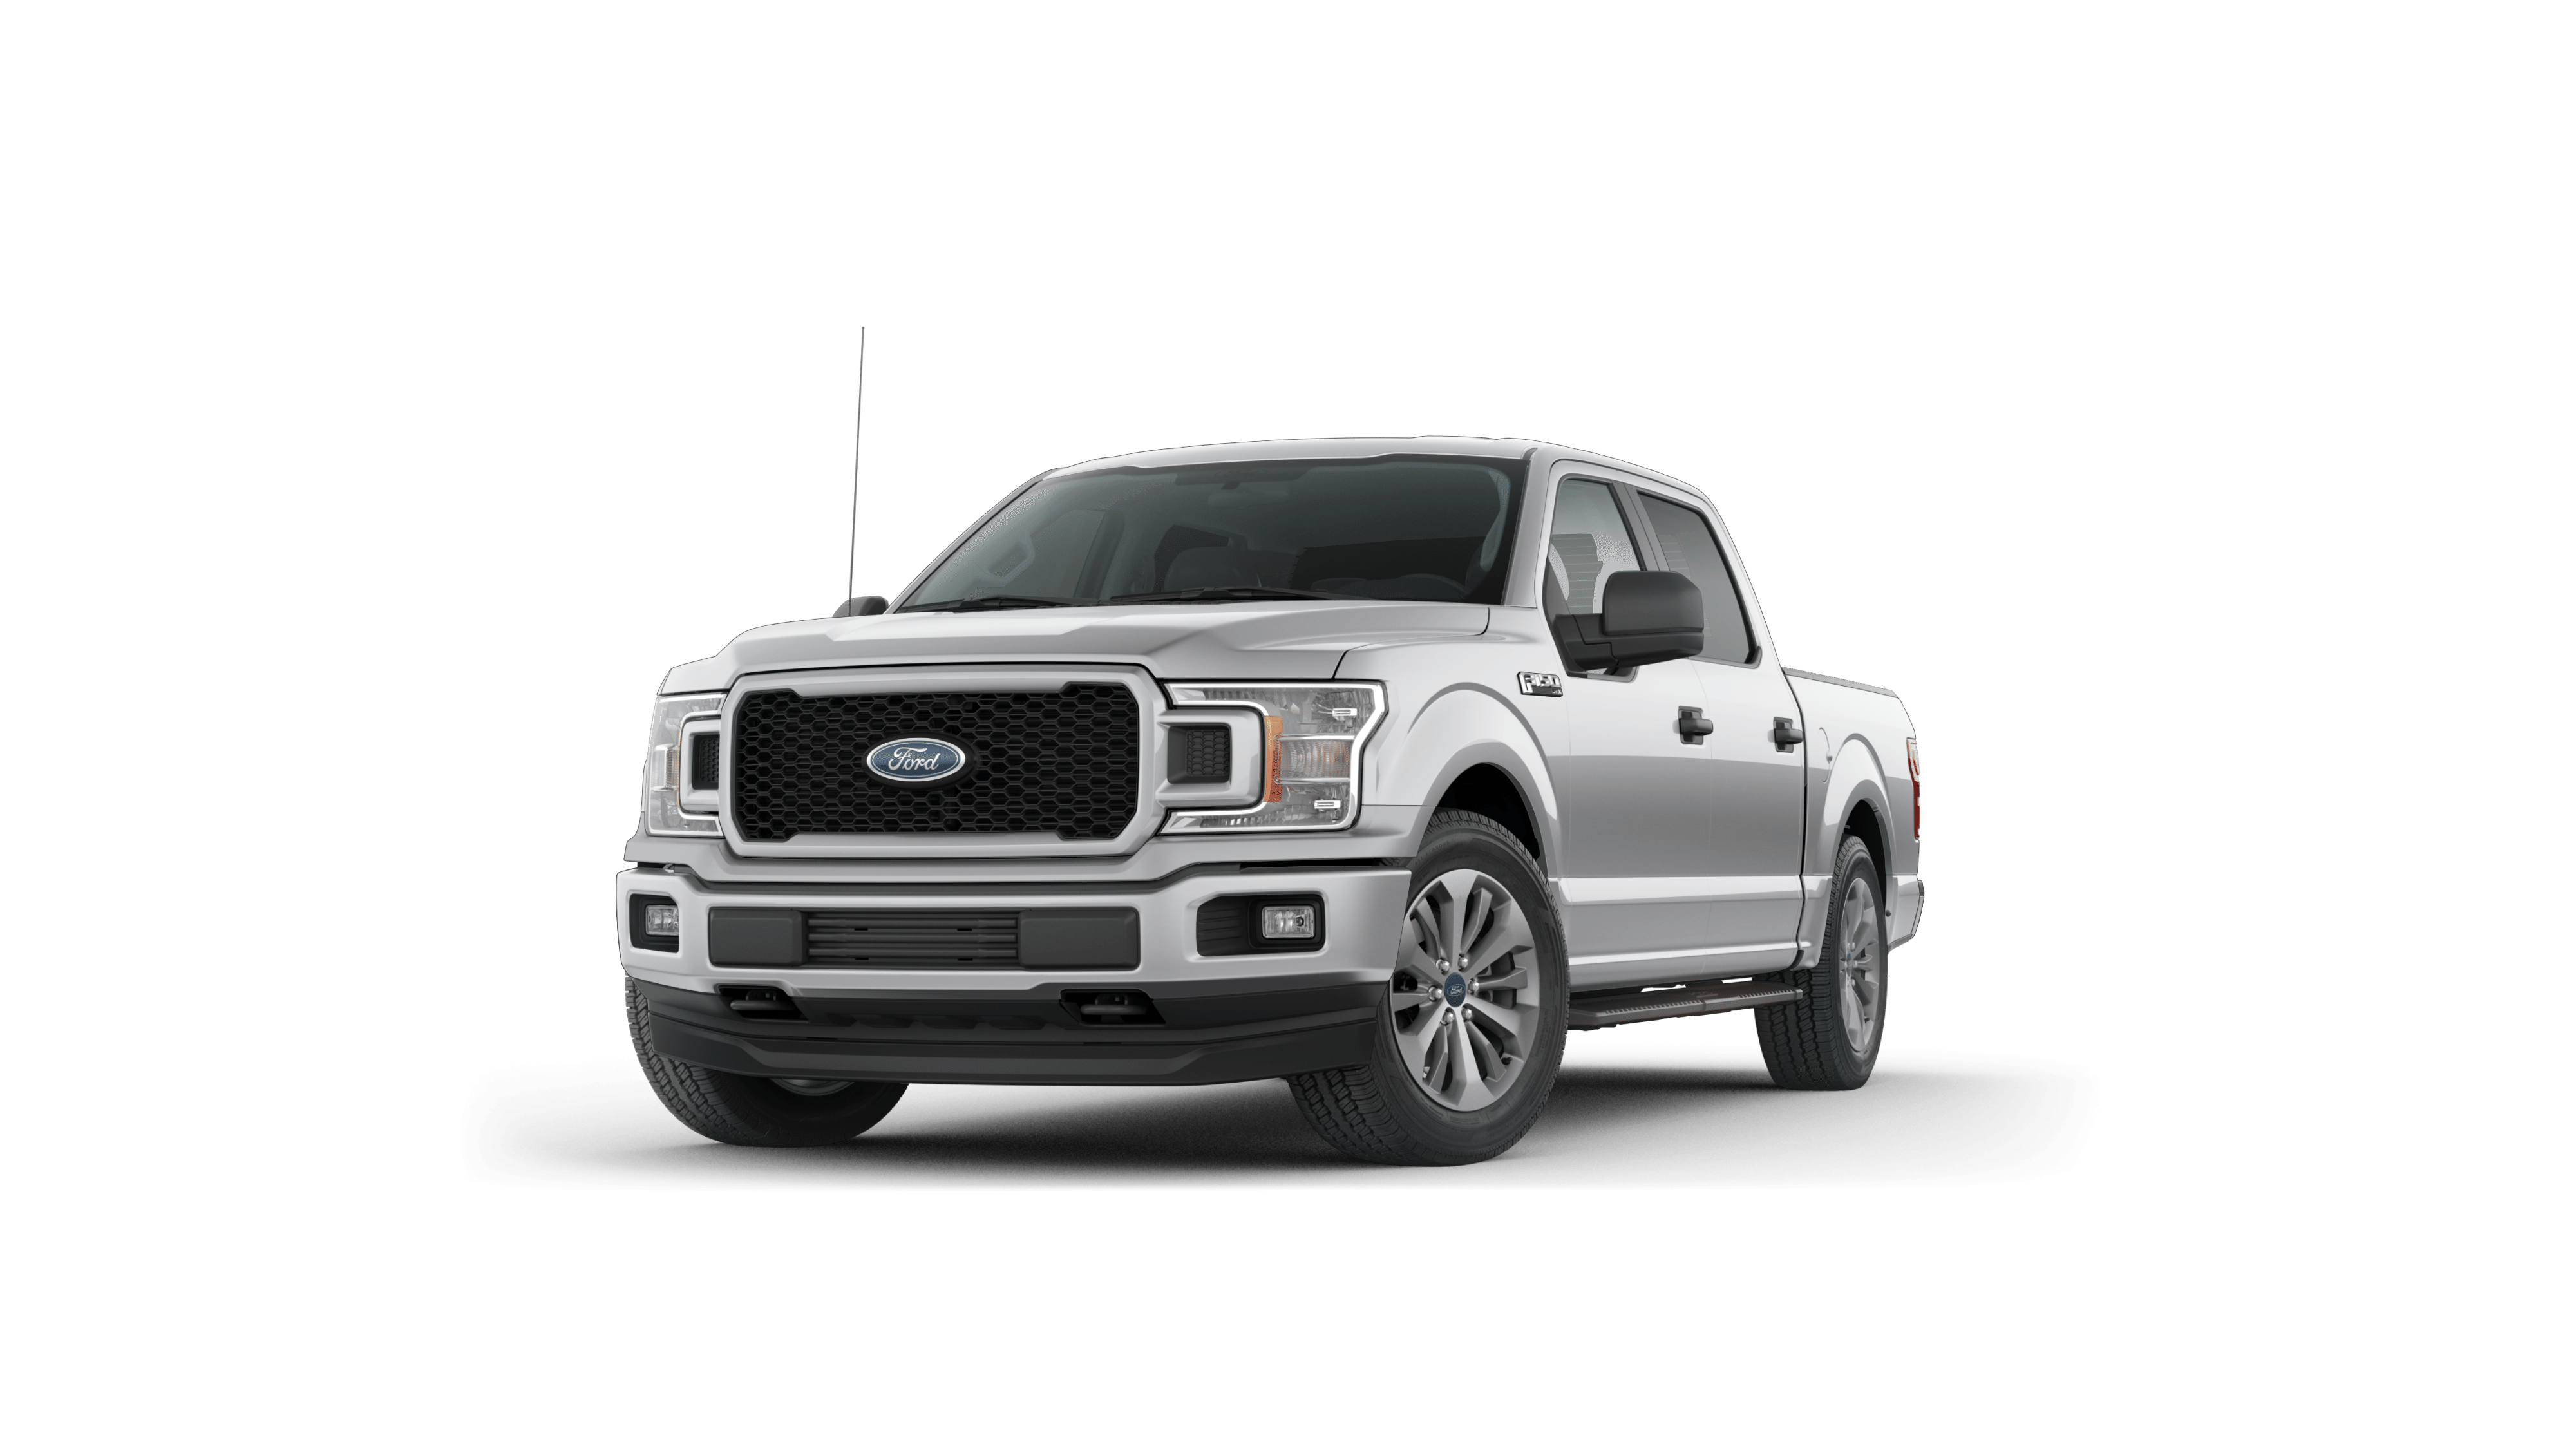 Ford Dealership Peoria Il >> 2018 Ford F-150 for sale in East Peoria - 1FTEW1E57JKE28524 - Uftring Ford